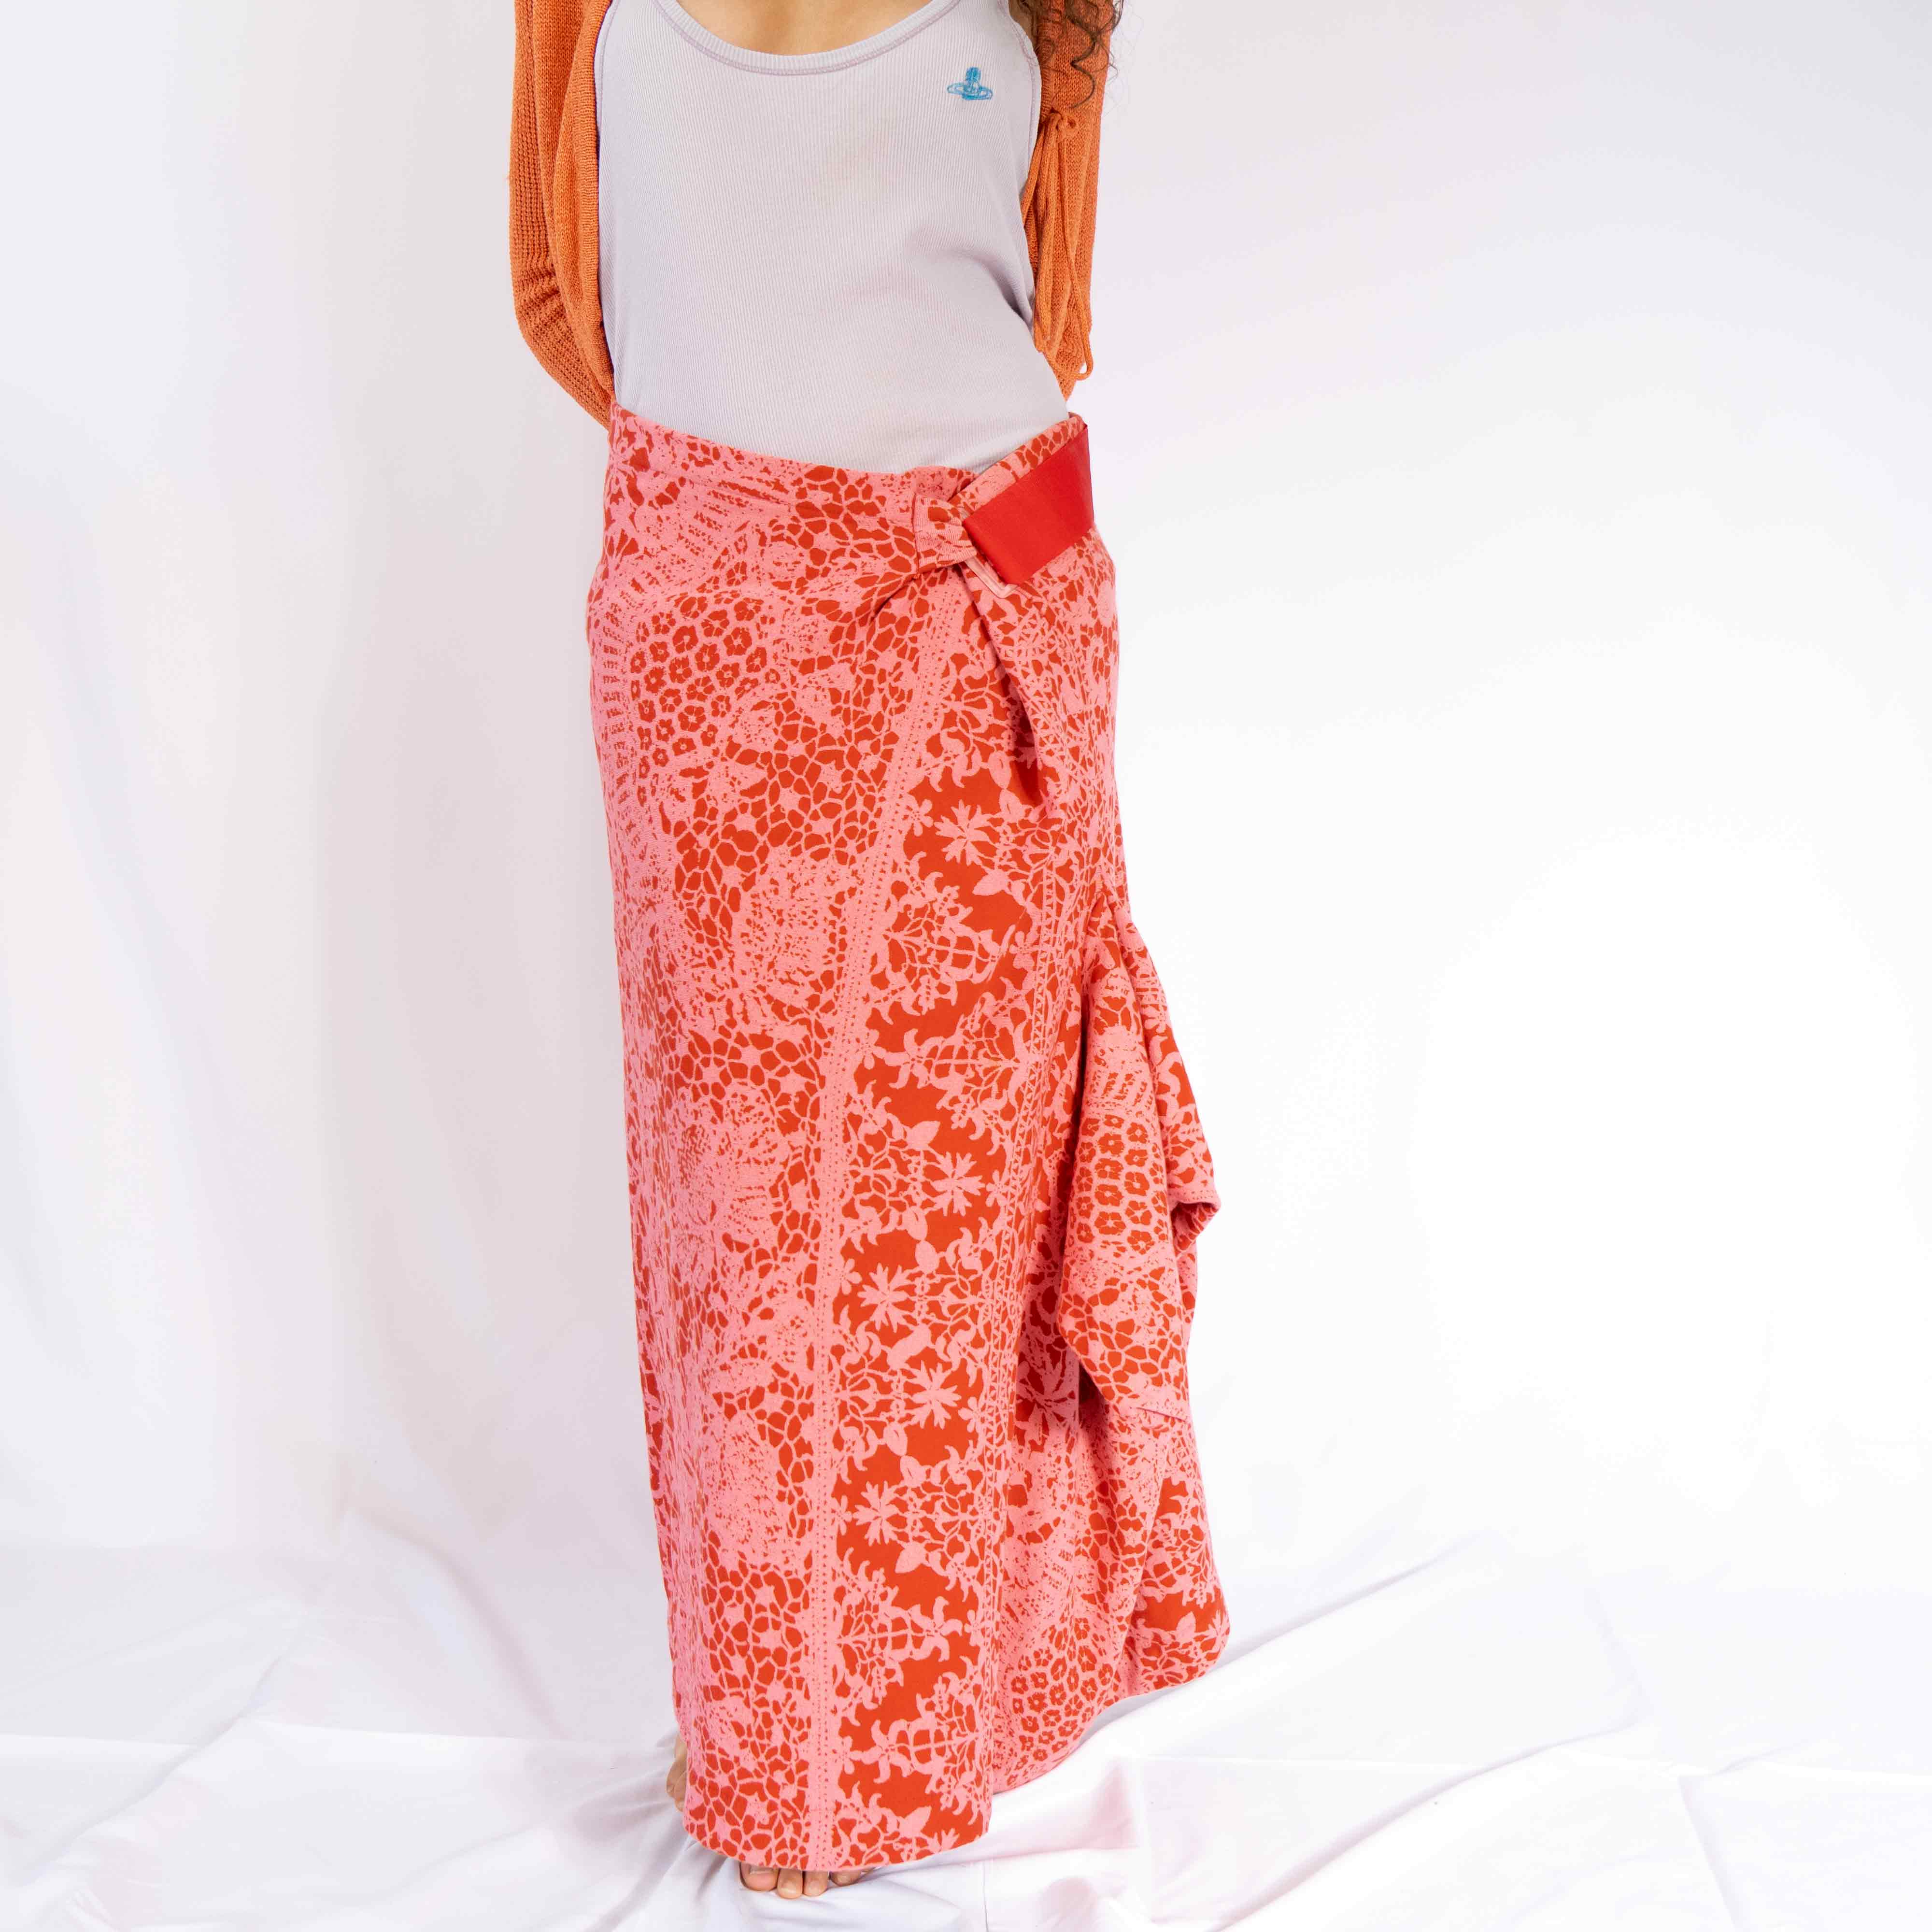 Tap into your inner beach babe with this epic long skirt. It features a velcro closure that allows you to wear it high or low waist.